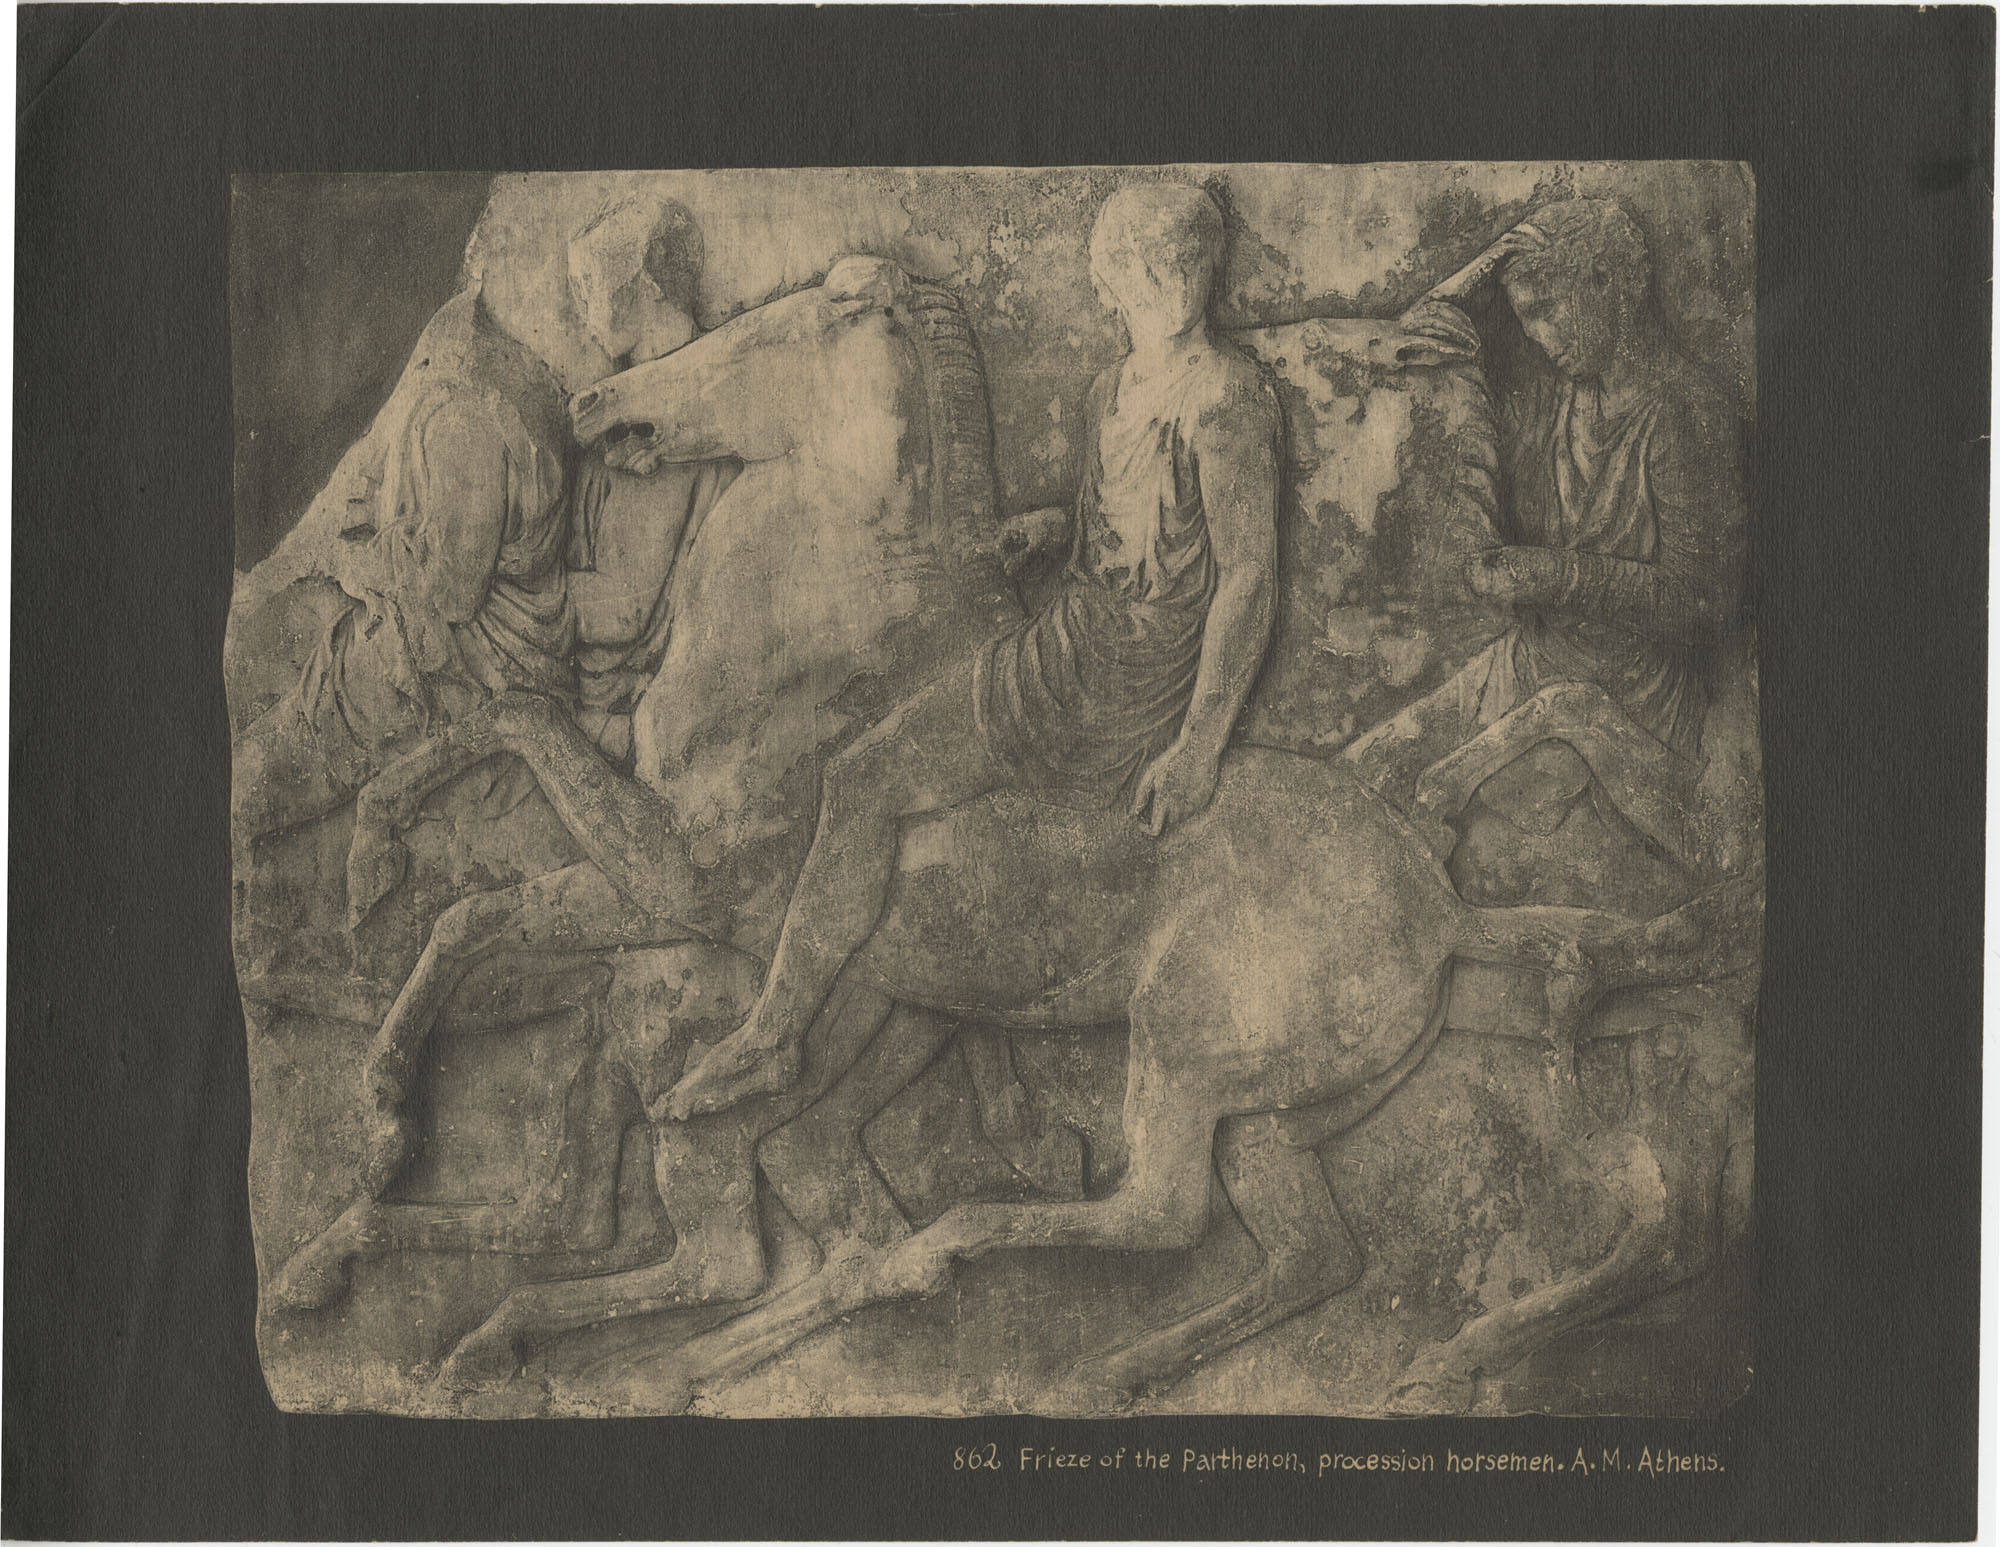 Sculpture from Athens, Greece, Photograph 13